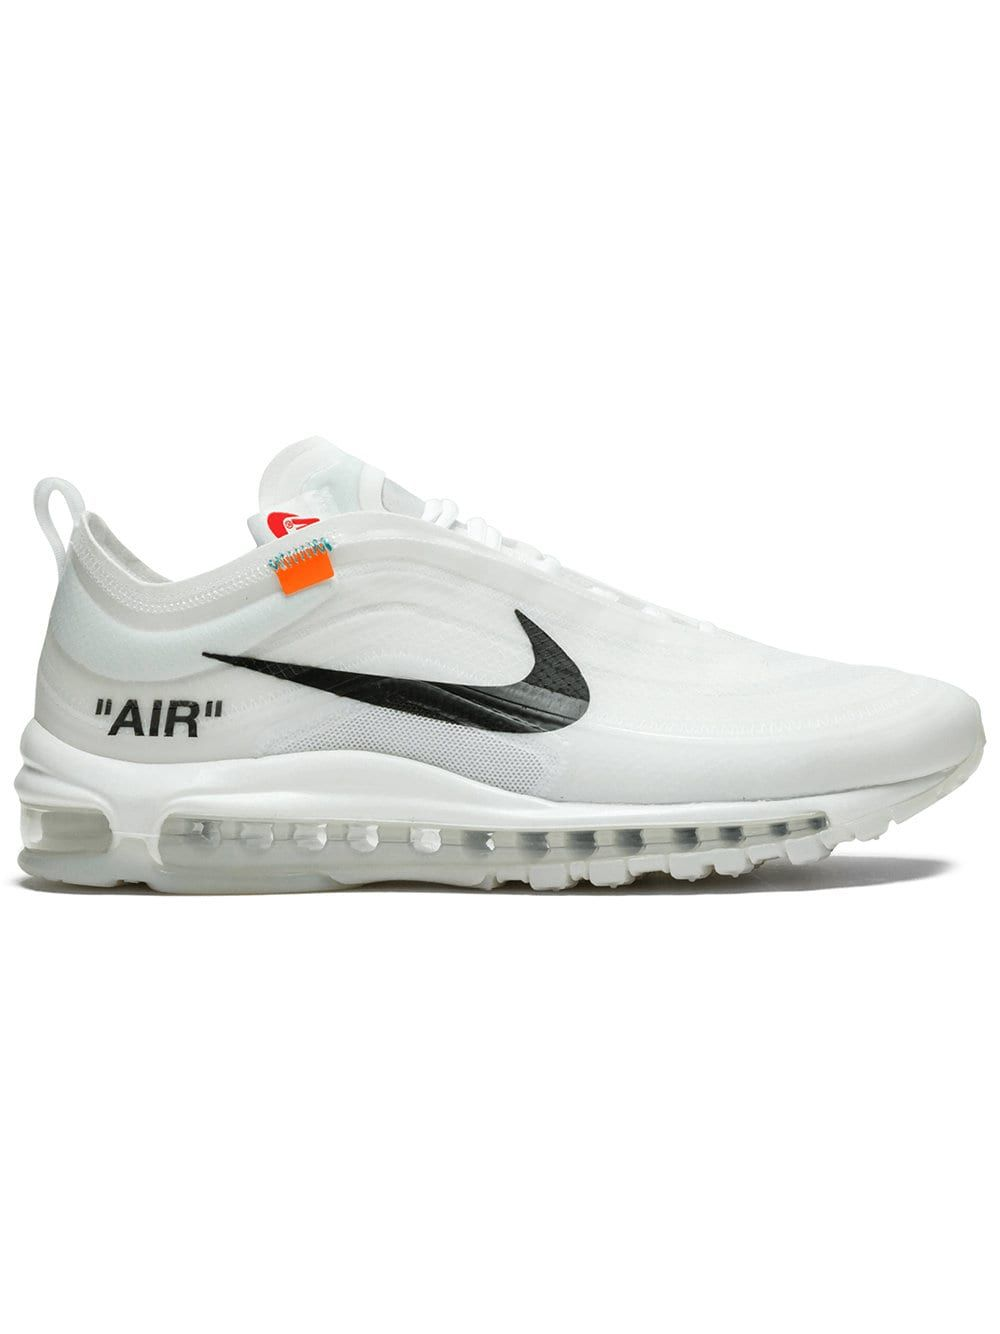 Shoes by Nike Air Max 97 OG  3c4498973